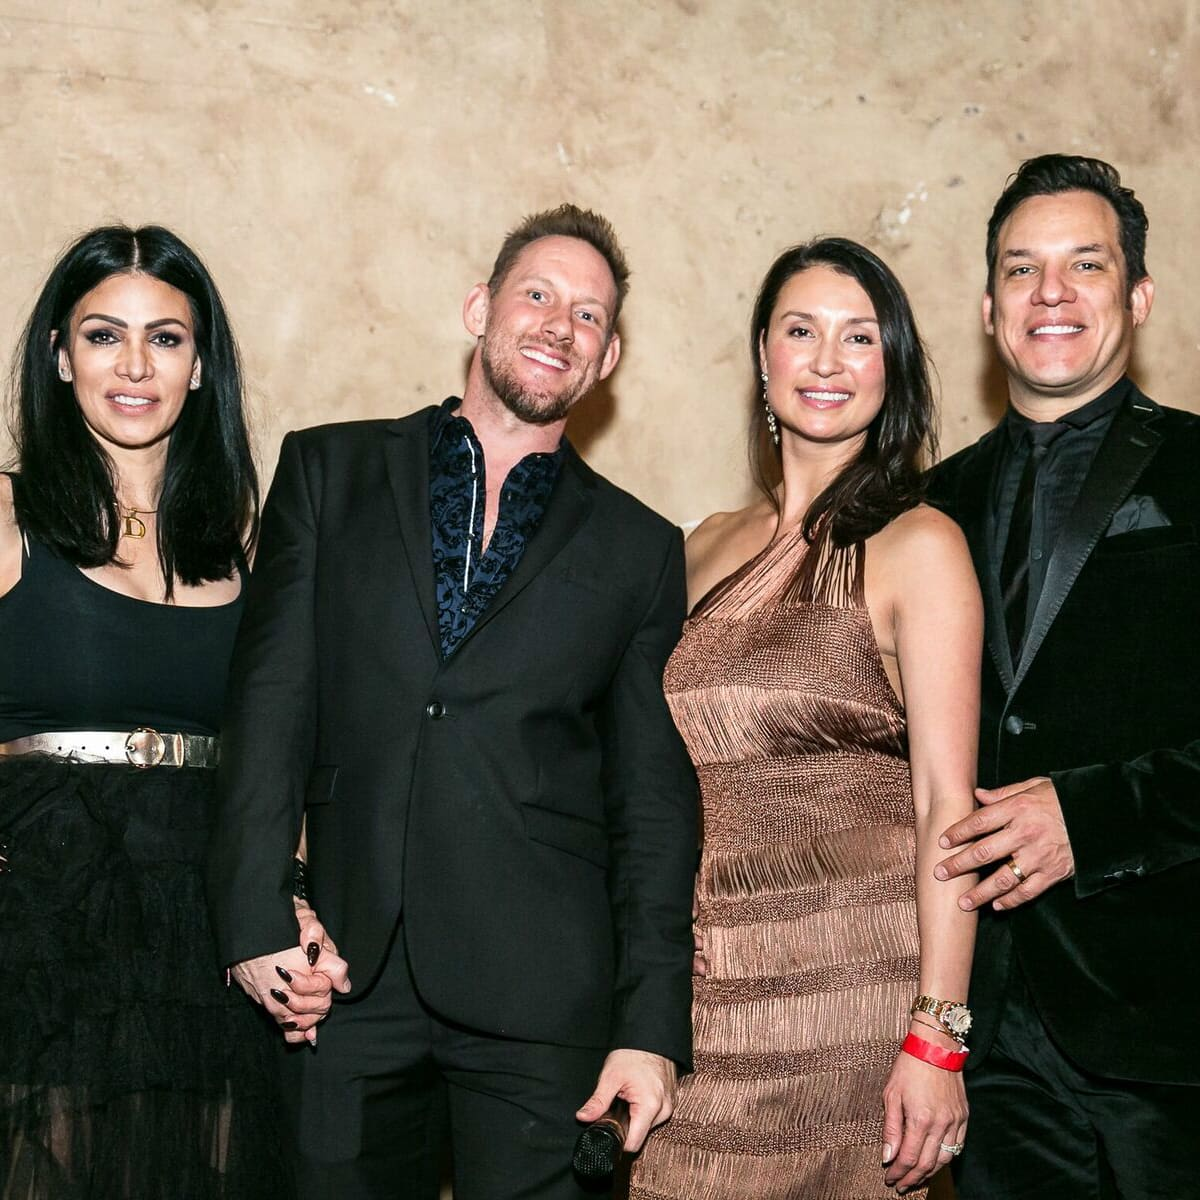 Holiday Soiree - party pic - guests